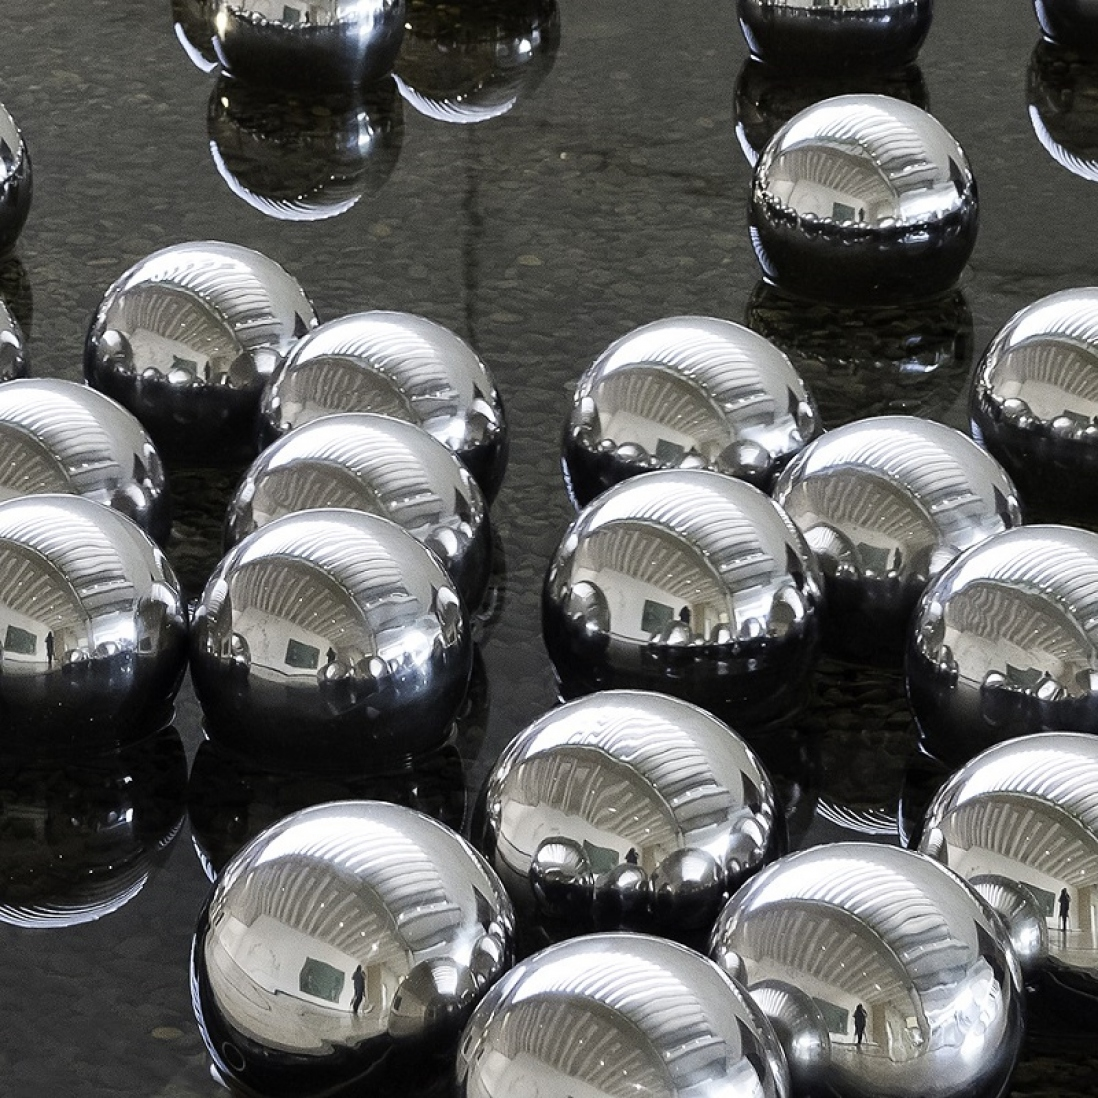 A group of reflecting mirrored balls.